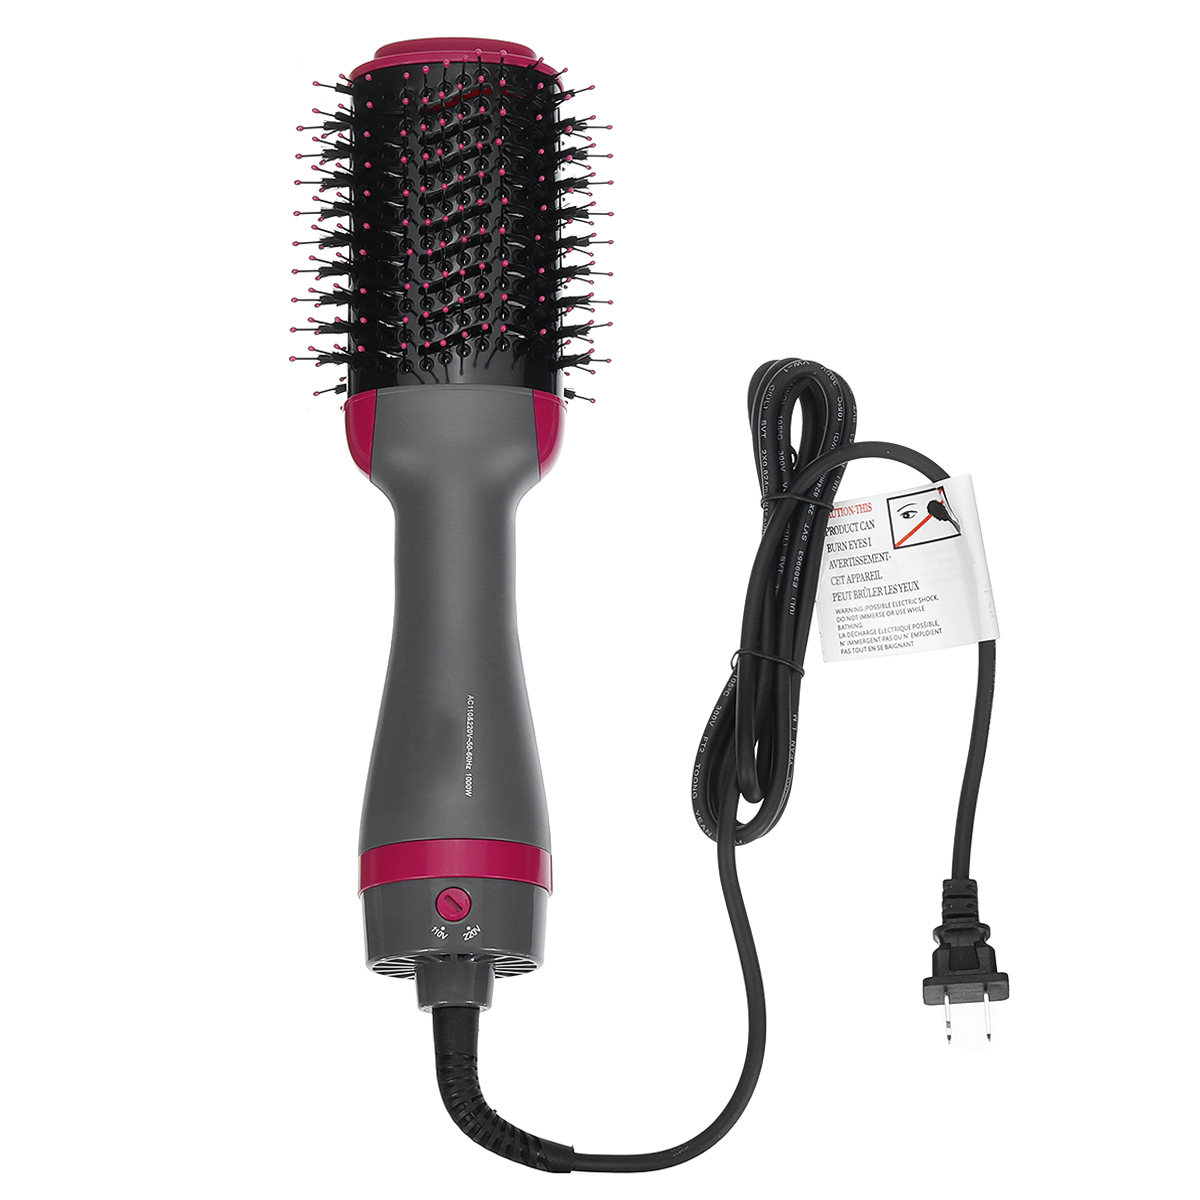 2 In 1 1000W Hair Dryer Blower Brush Comb Volumizer Straightening Curling Smoothing Comb